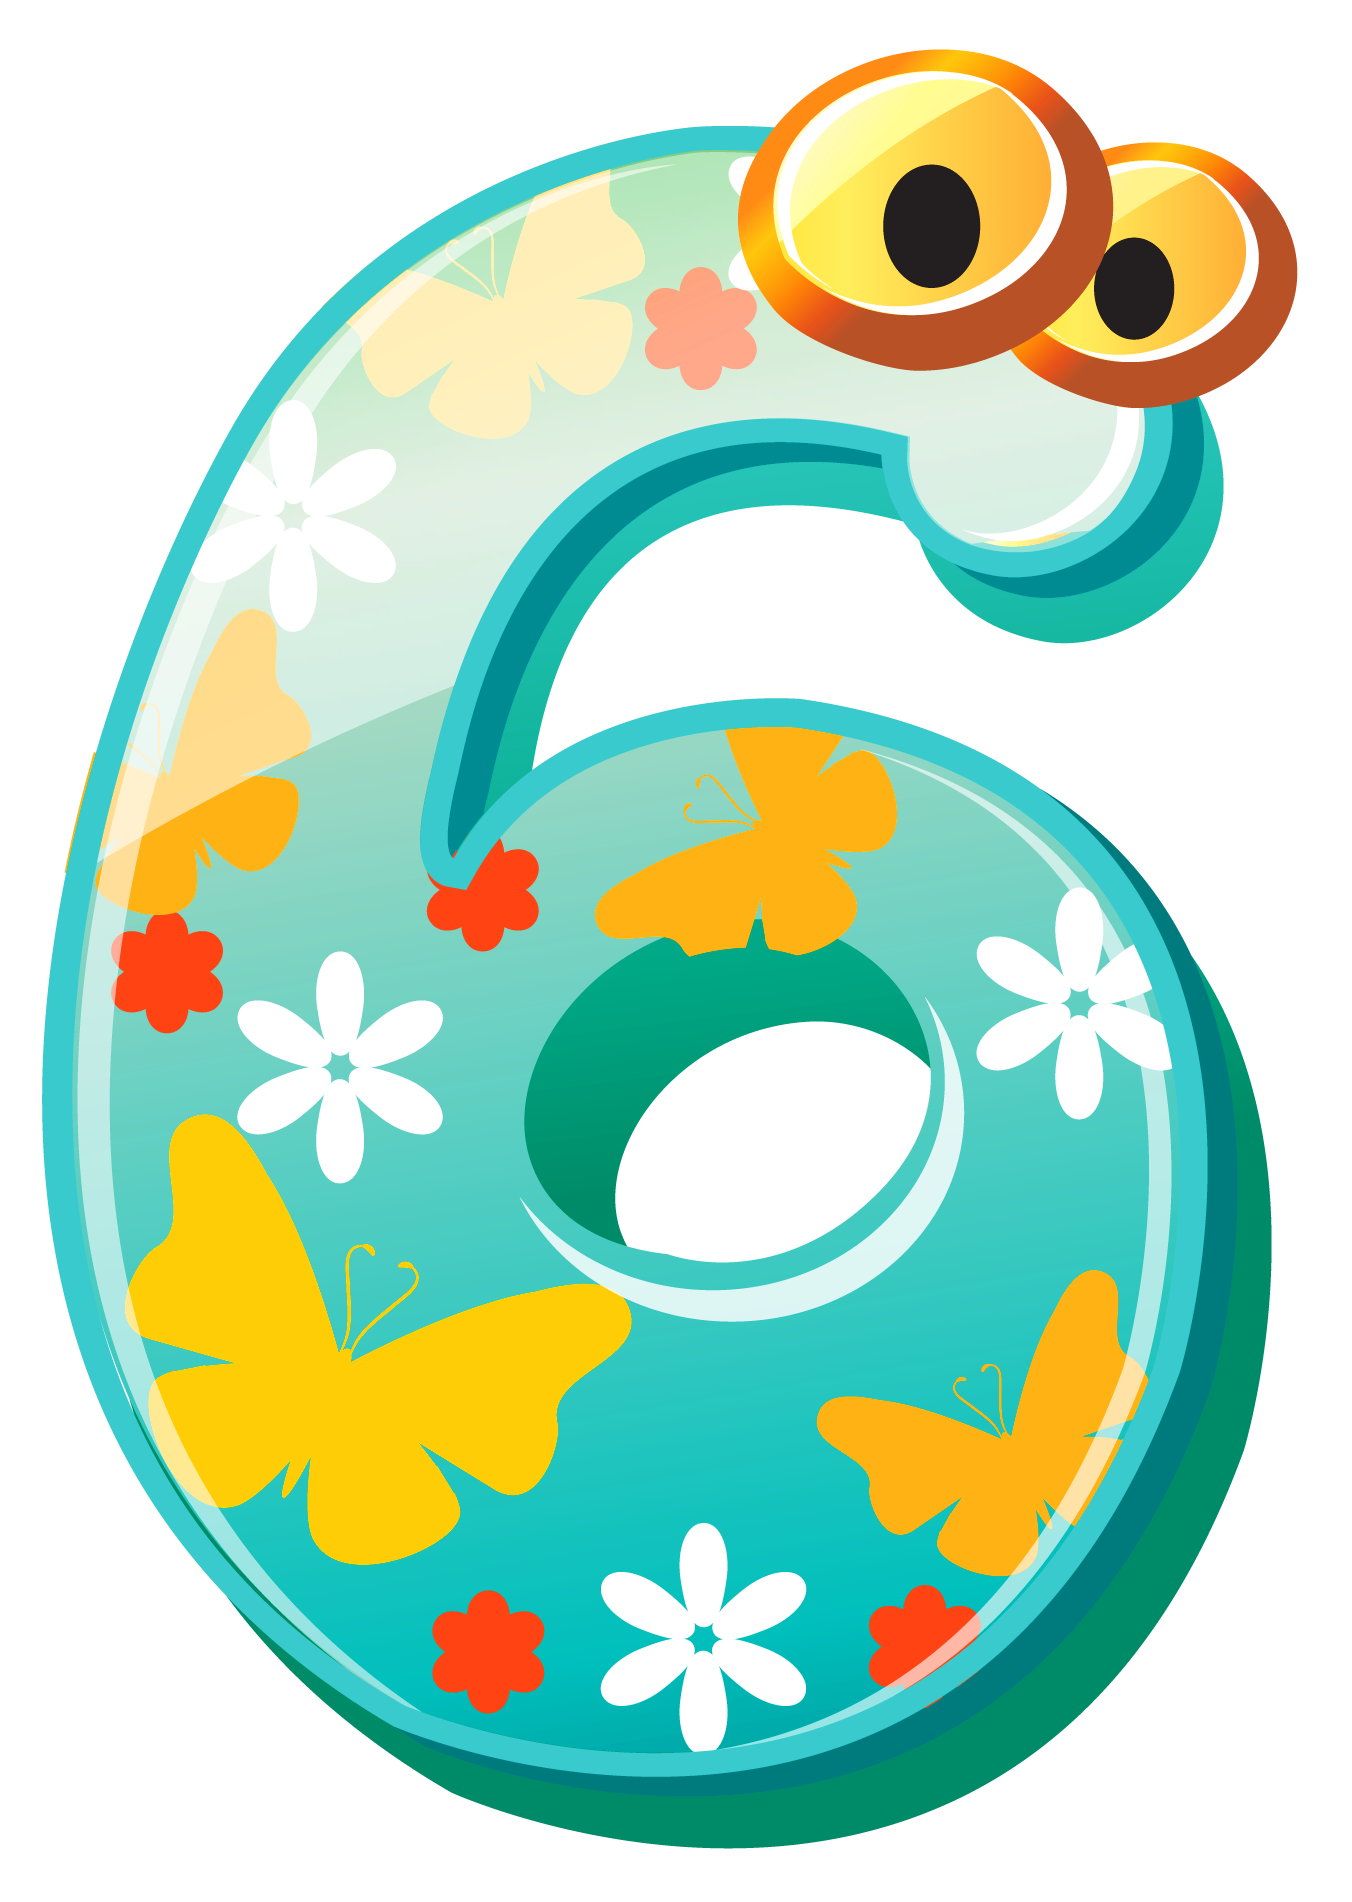 Cute number six image. Numbers clipart learning